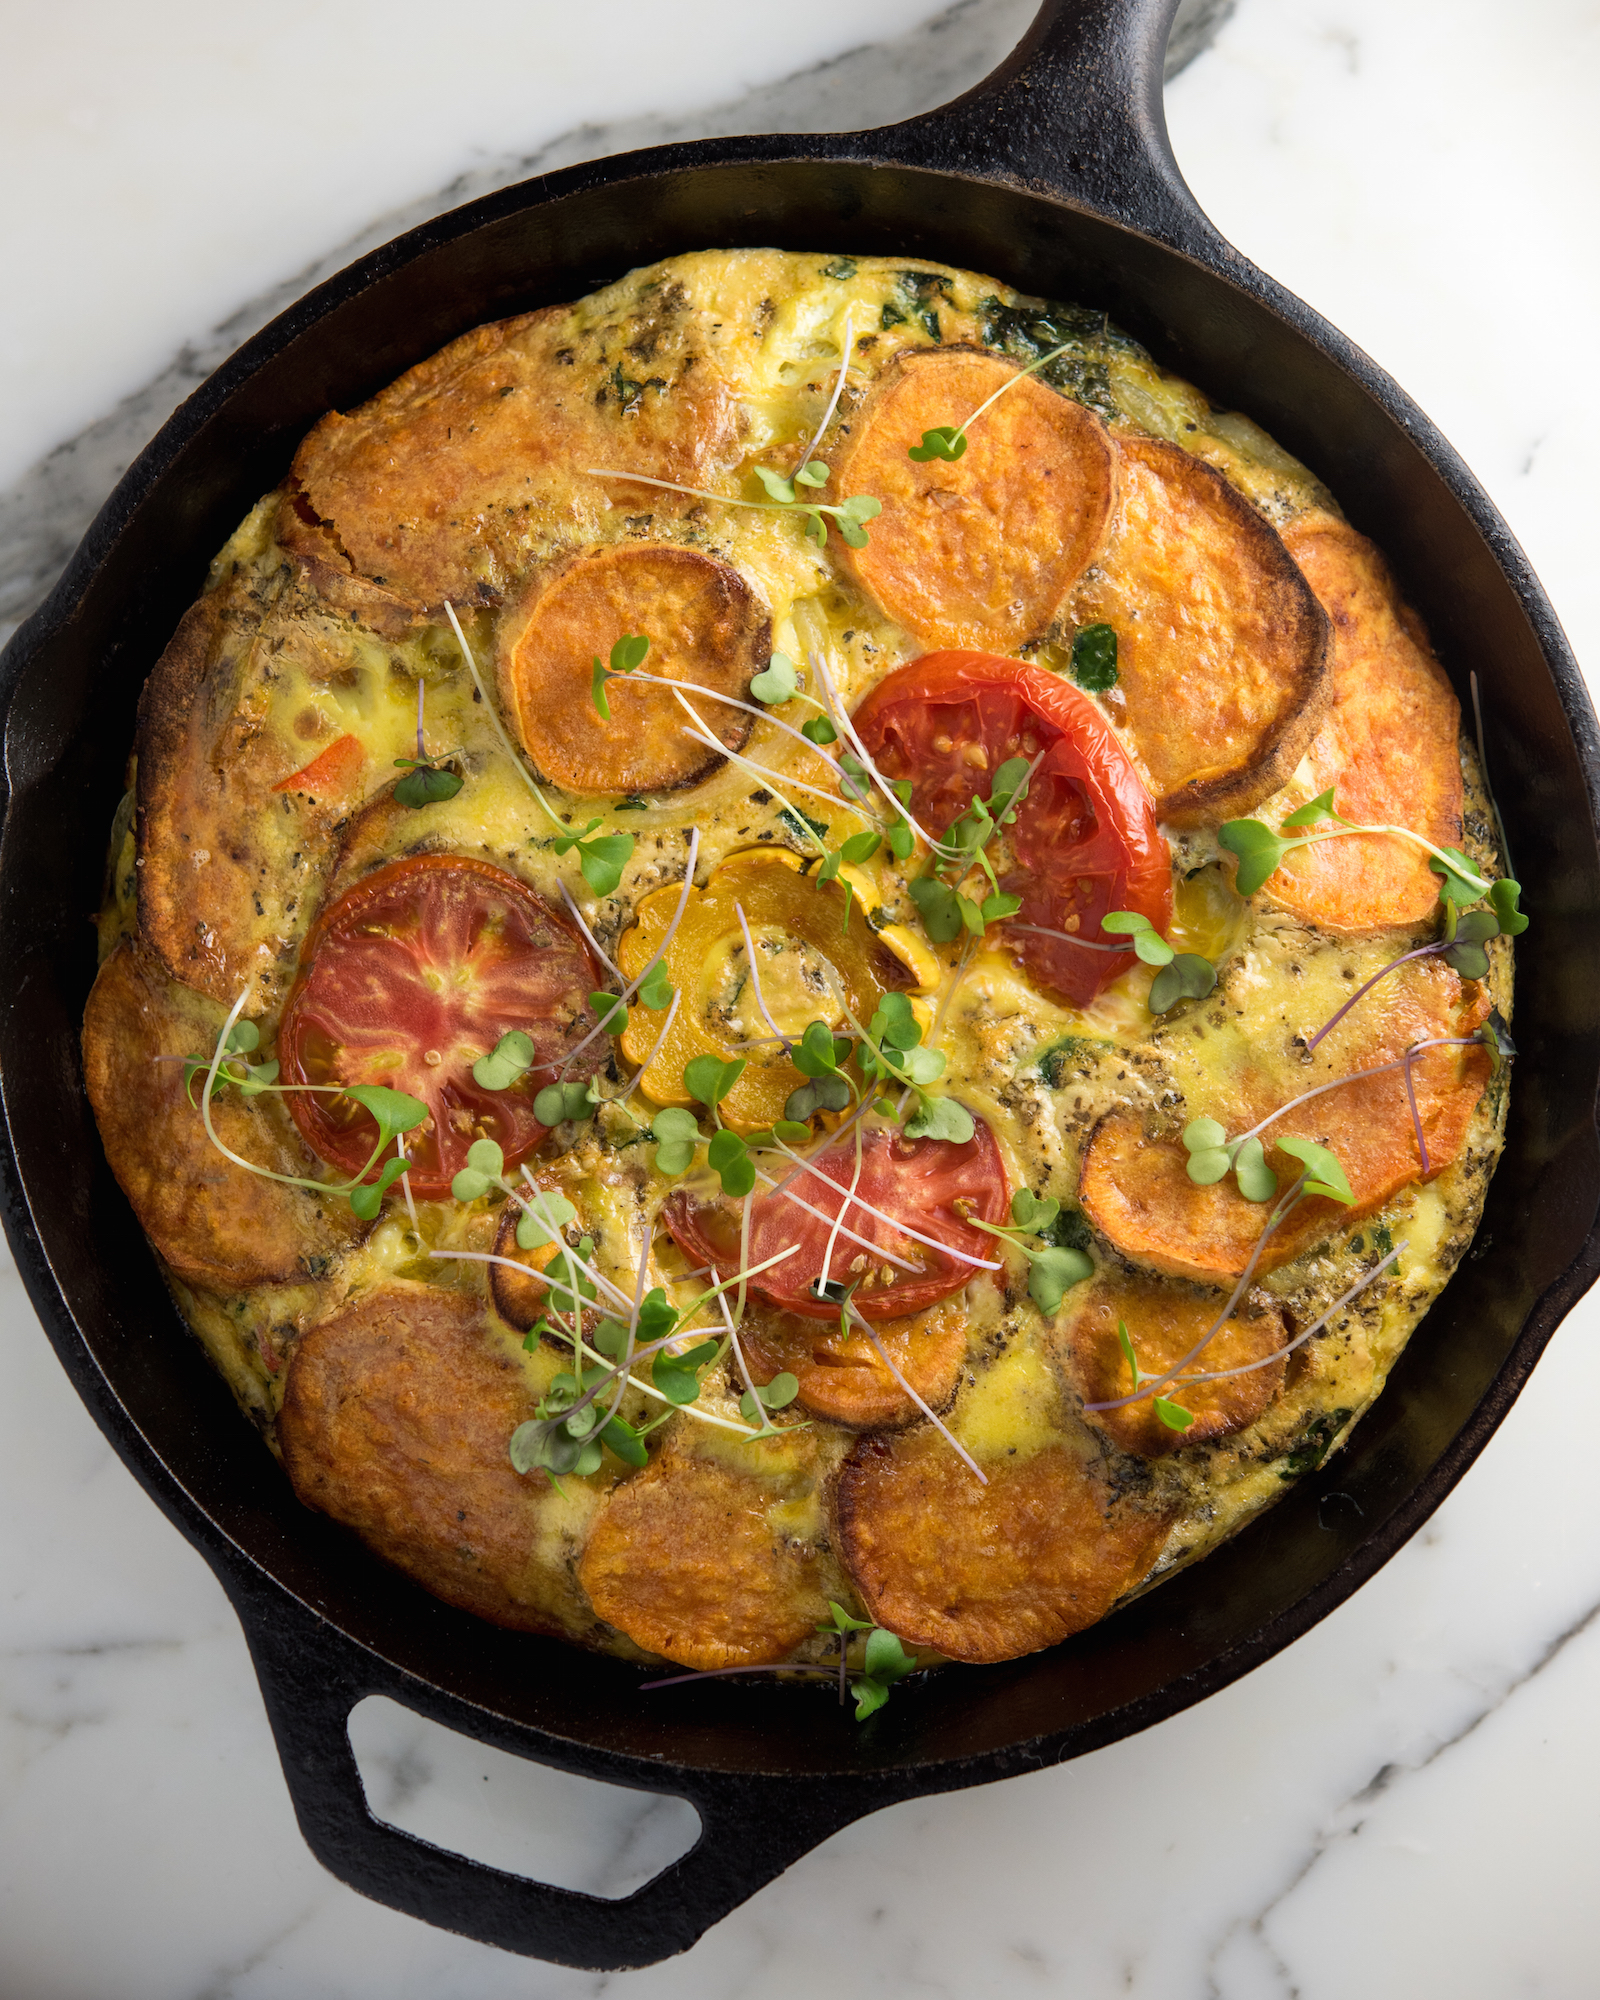 Fall Frittata: A Seasonal, Nutritious, High-Protein, Easy Dinner